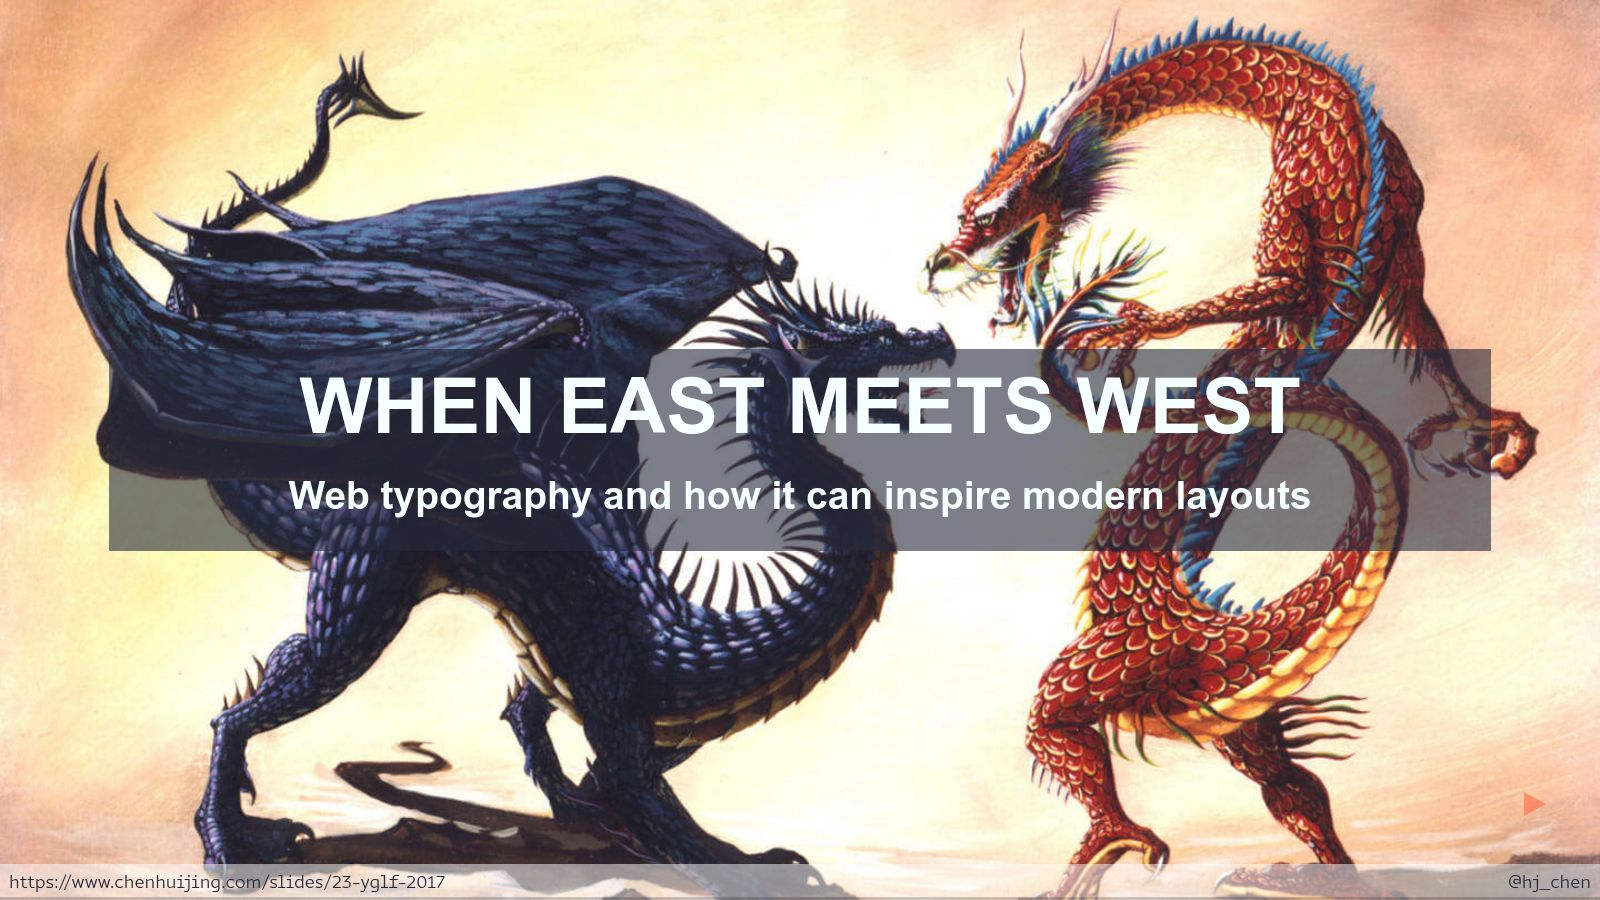 When East meets West: Web typography and how it can inspire modern layouts